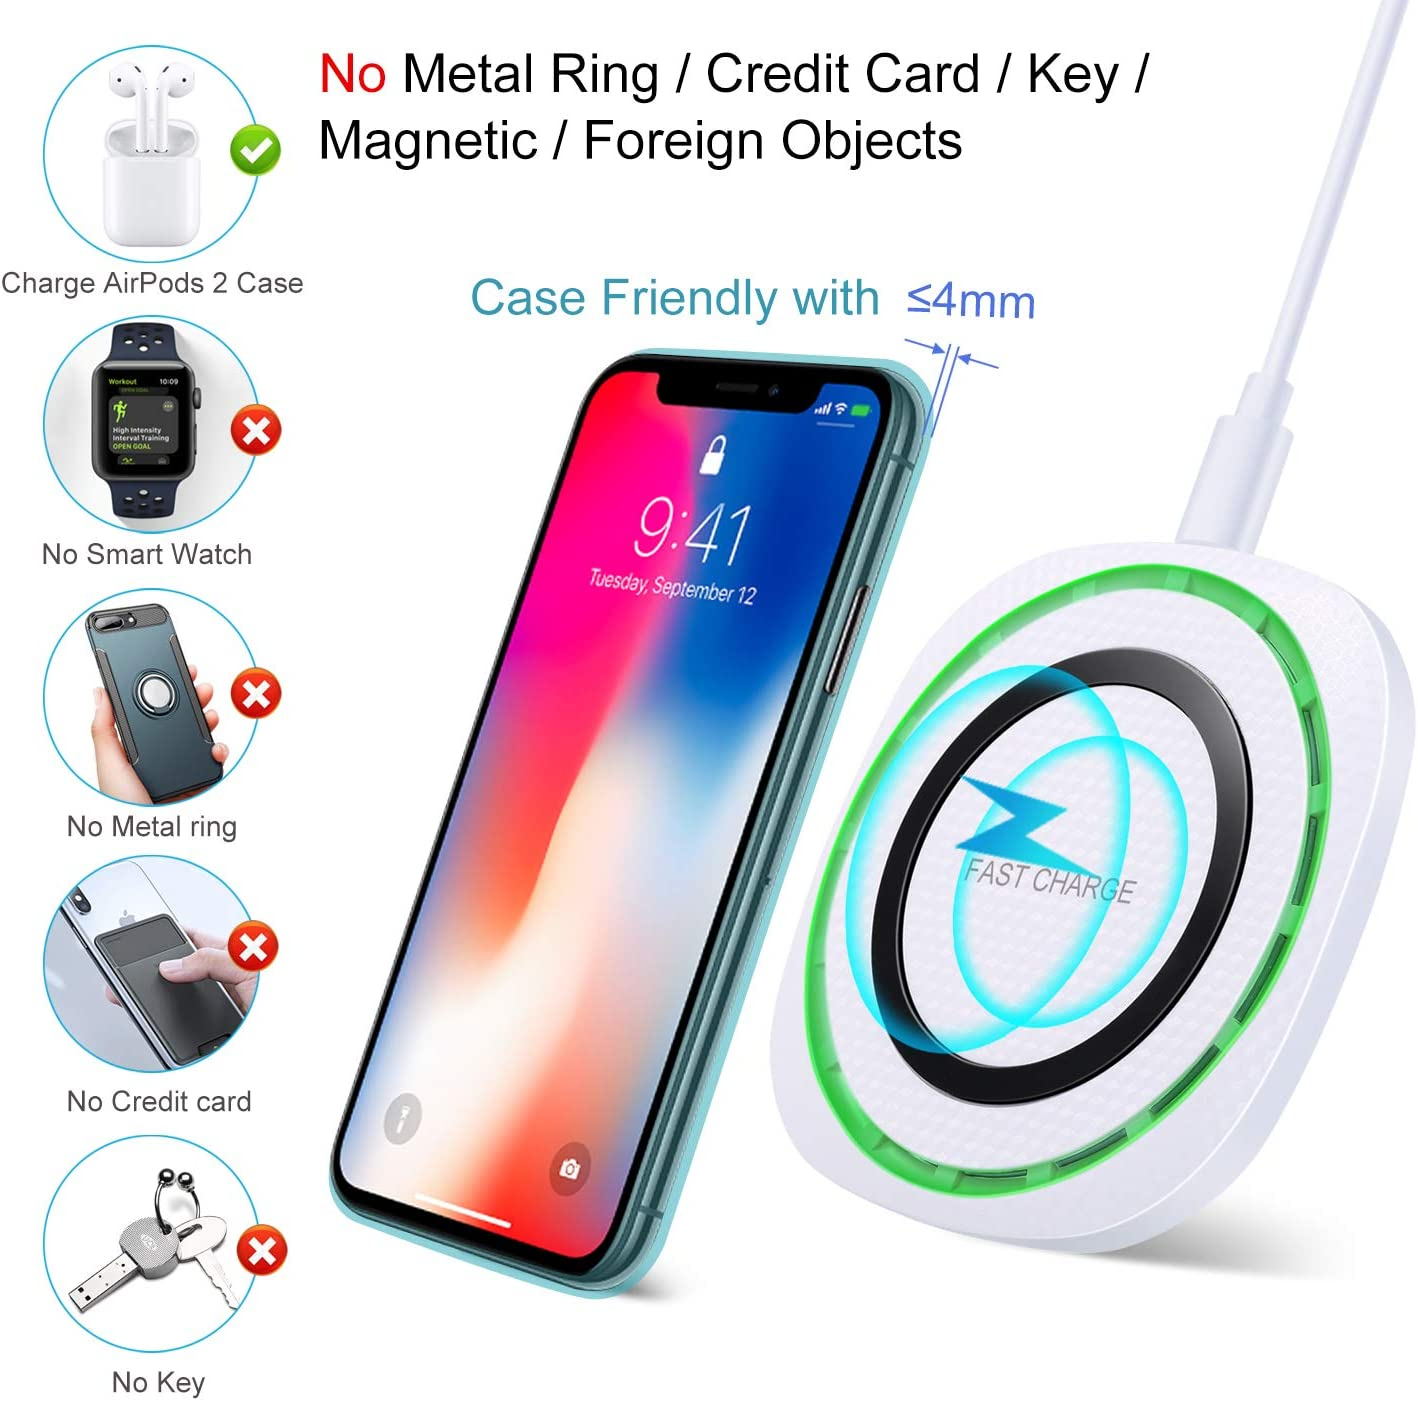 OKRAY 2 Pack Wireless Charger No AC Adapter 10W Fast-Charging Compatible Galaxy S10//S9//S8 Plus//S10E//Note 10//9//8 Plus - Black White 7.5W Compatible iPhone 11//11 Pro Max//Xs MAX//XS//XR//X//8 Plus